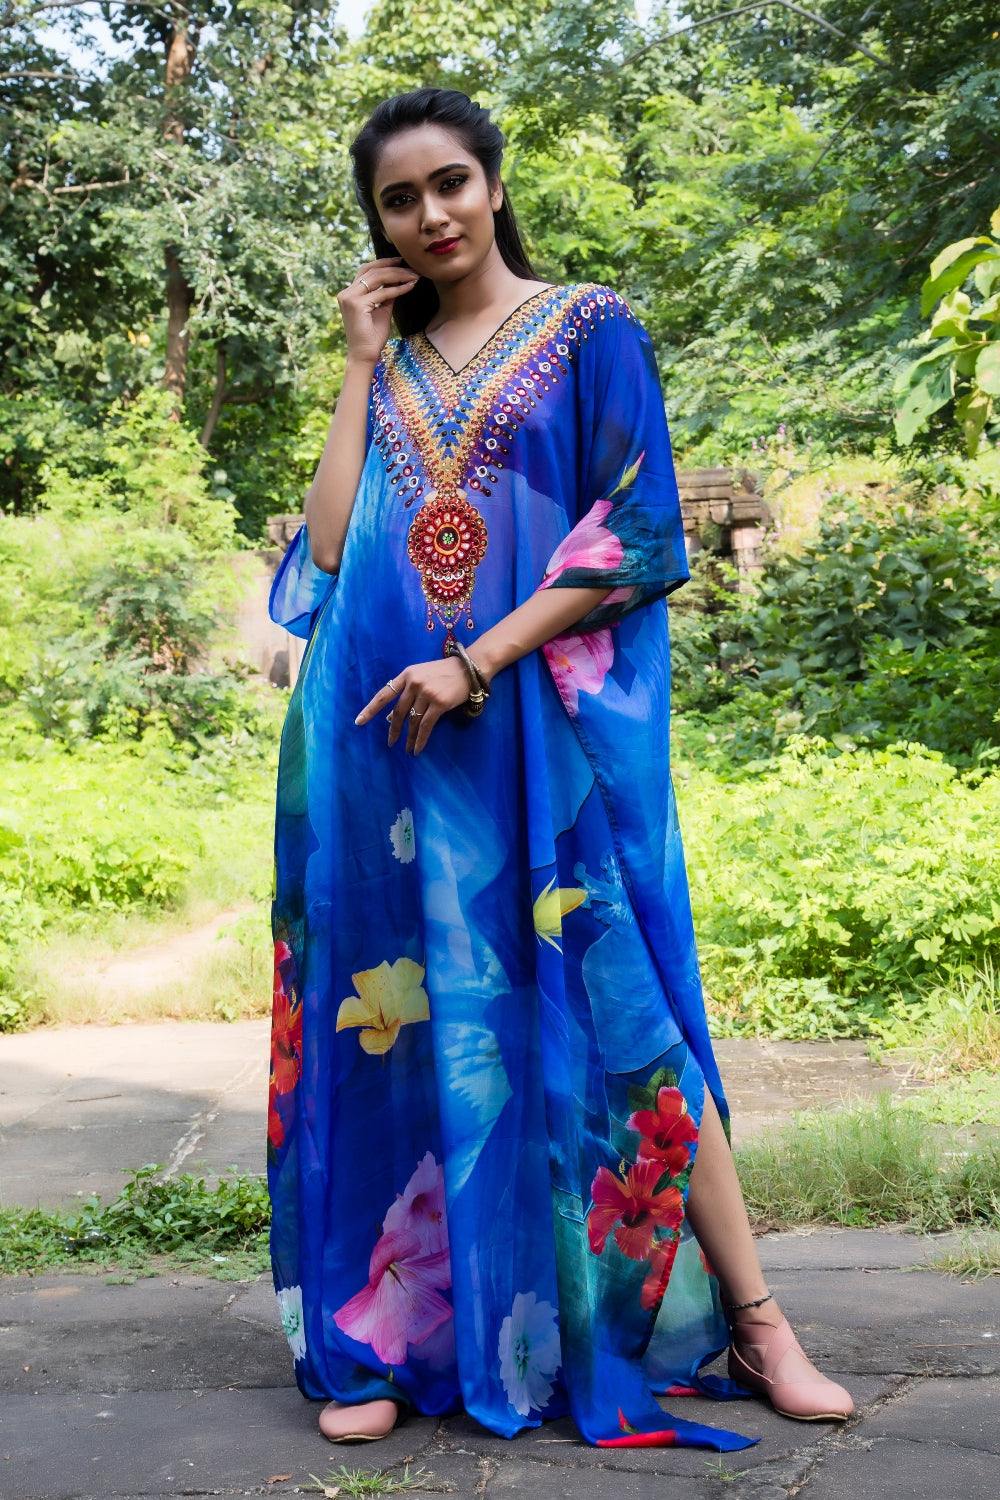 Silk Kaftan with a spiral of aromatic and colourful flowers and embellished neckline - Silk kaftan